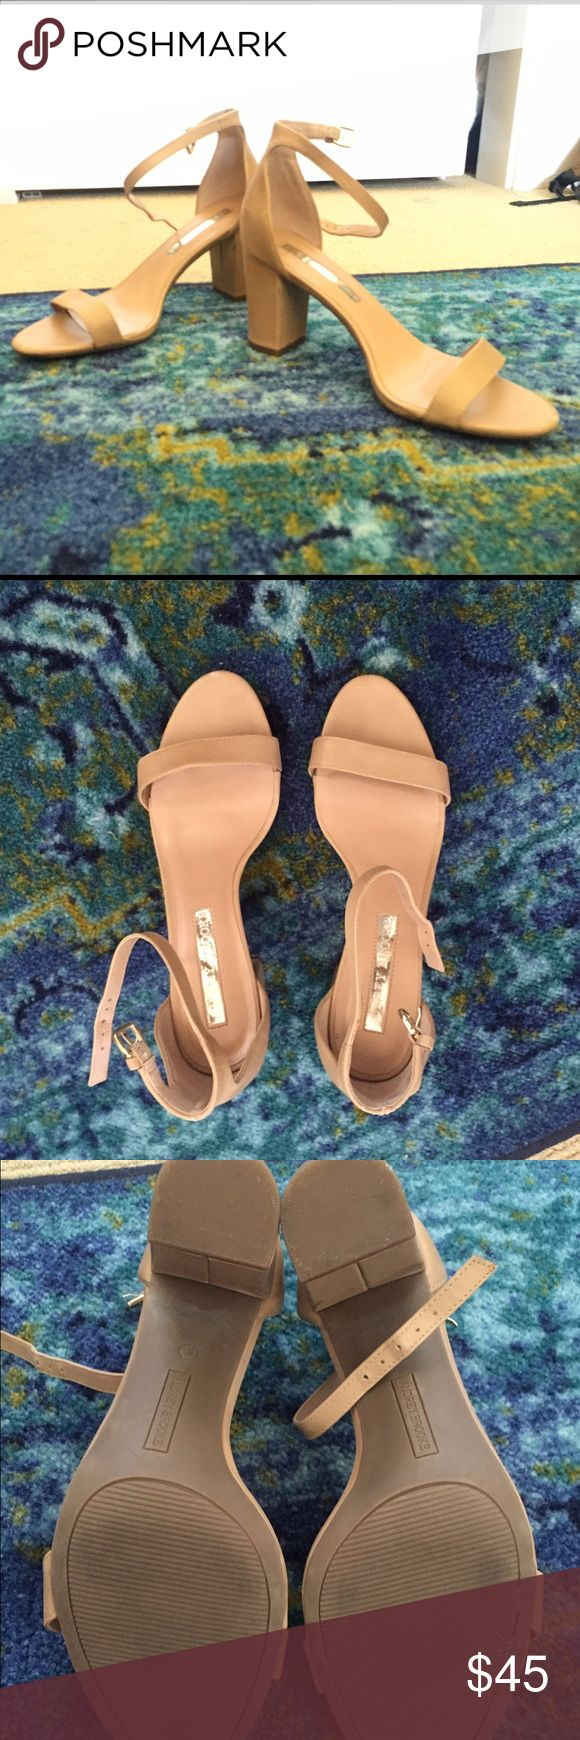 Ashley Brooke tan strappy heels Ashley Brooke tan strappy heels - only worn once as you can tell from the bottoms! Ashley brooke Shoes Heels